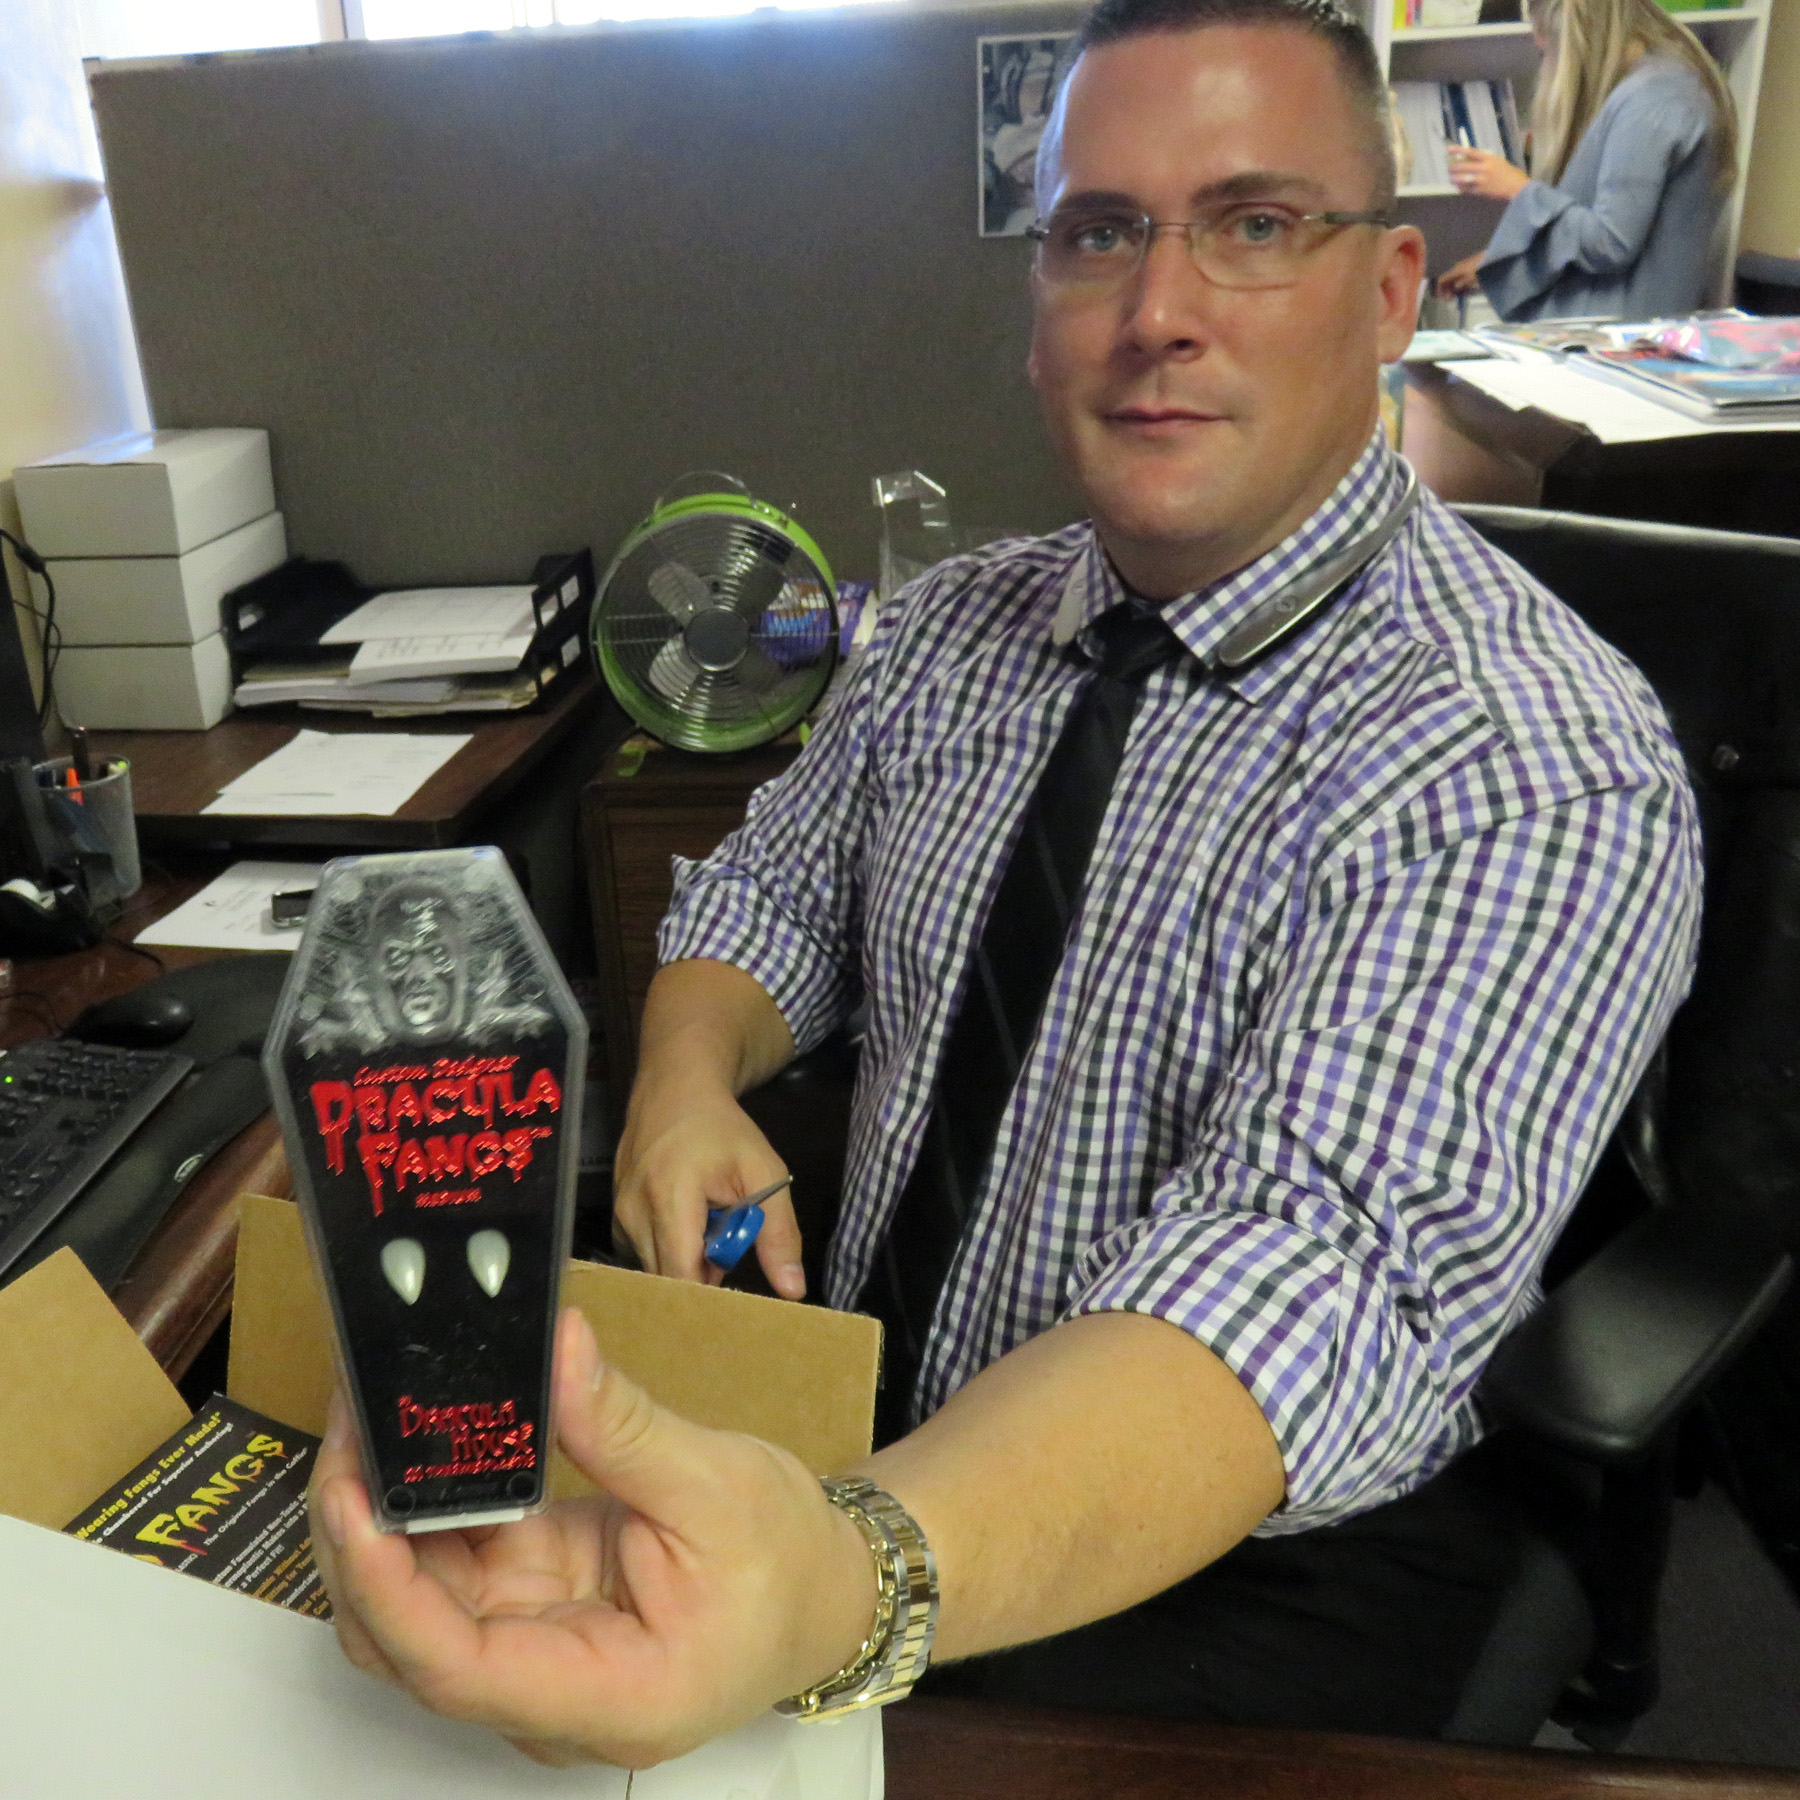 Jason Cobb, Office and Educational Outreach Manager, showing off a package of Dracula fangs.)